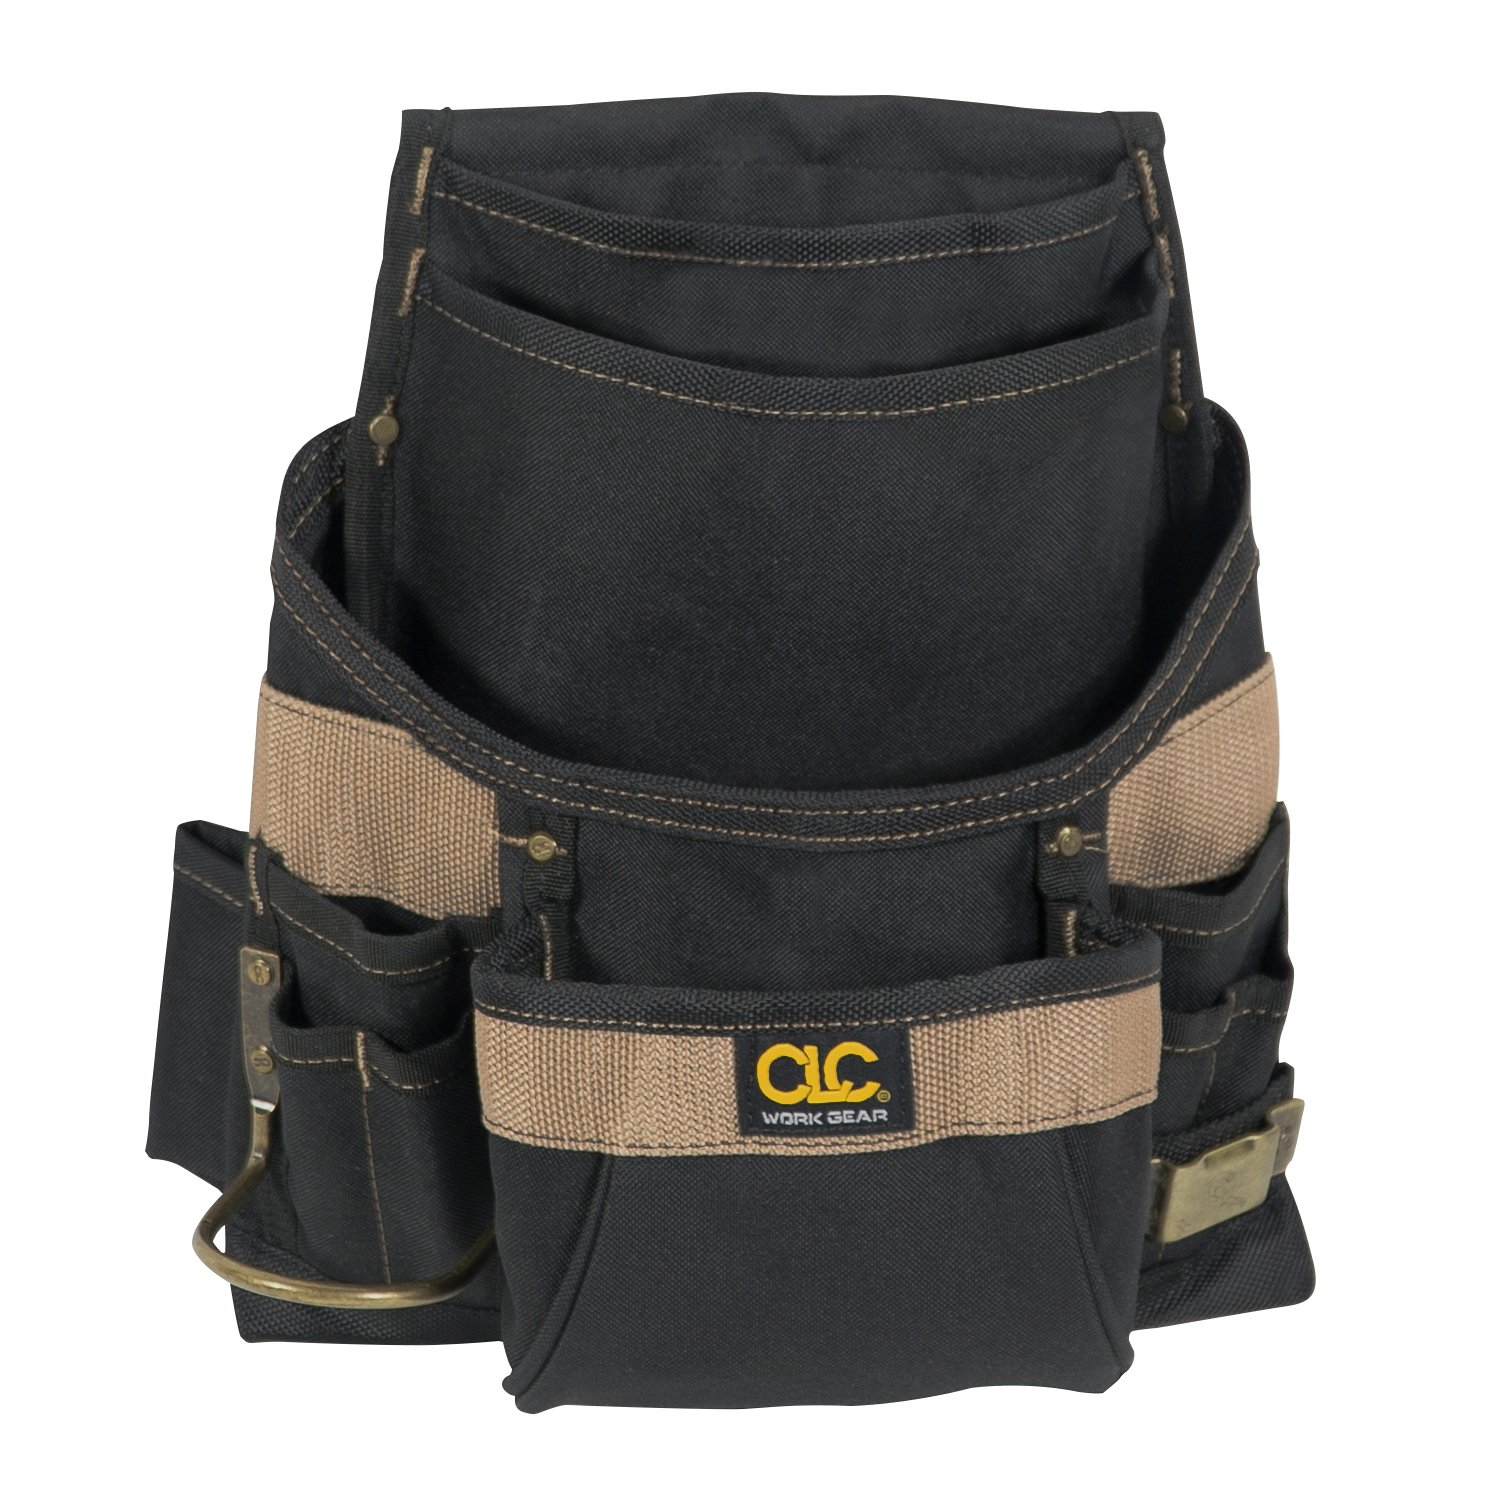 CLC Custom Leathercraft 1620 Poly Nail and Tool Bag, 11 Pockets